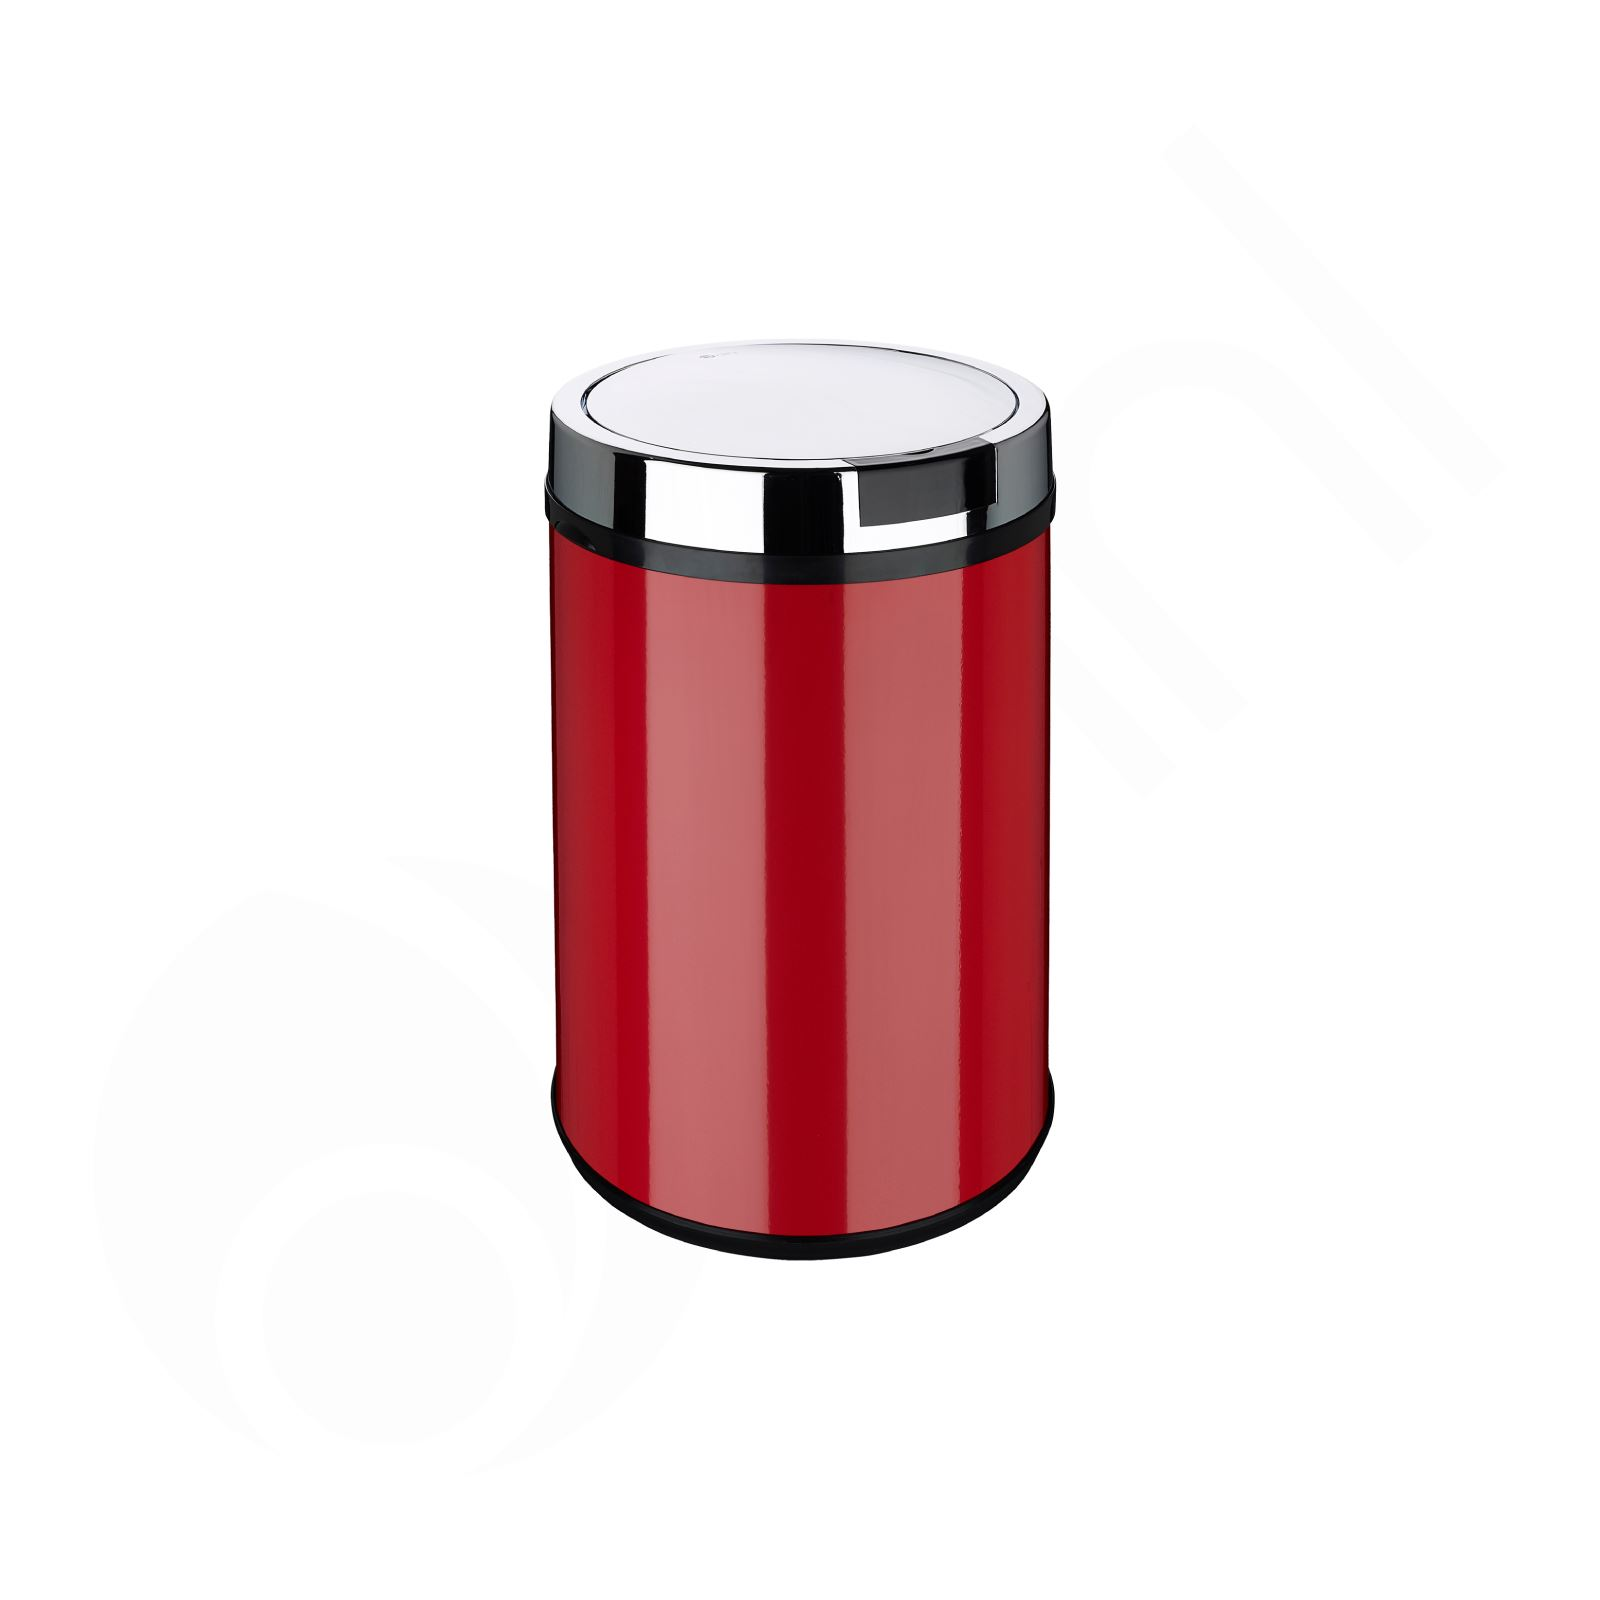 Kitchen Waste Bins: Rectangle Round White Black Red Silver Sensor Kitchen